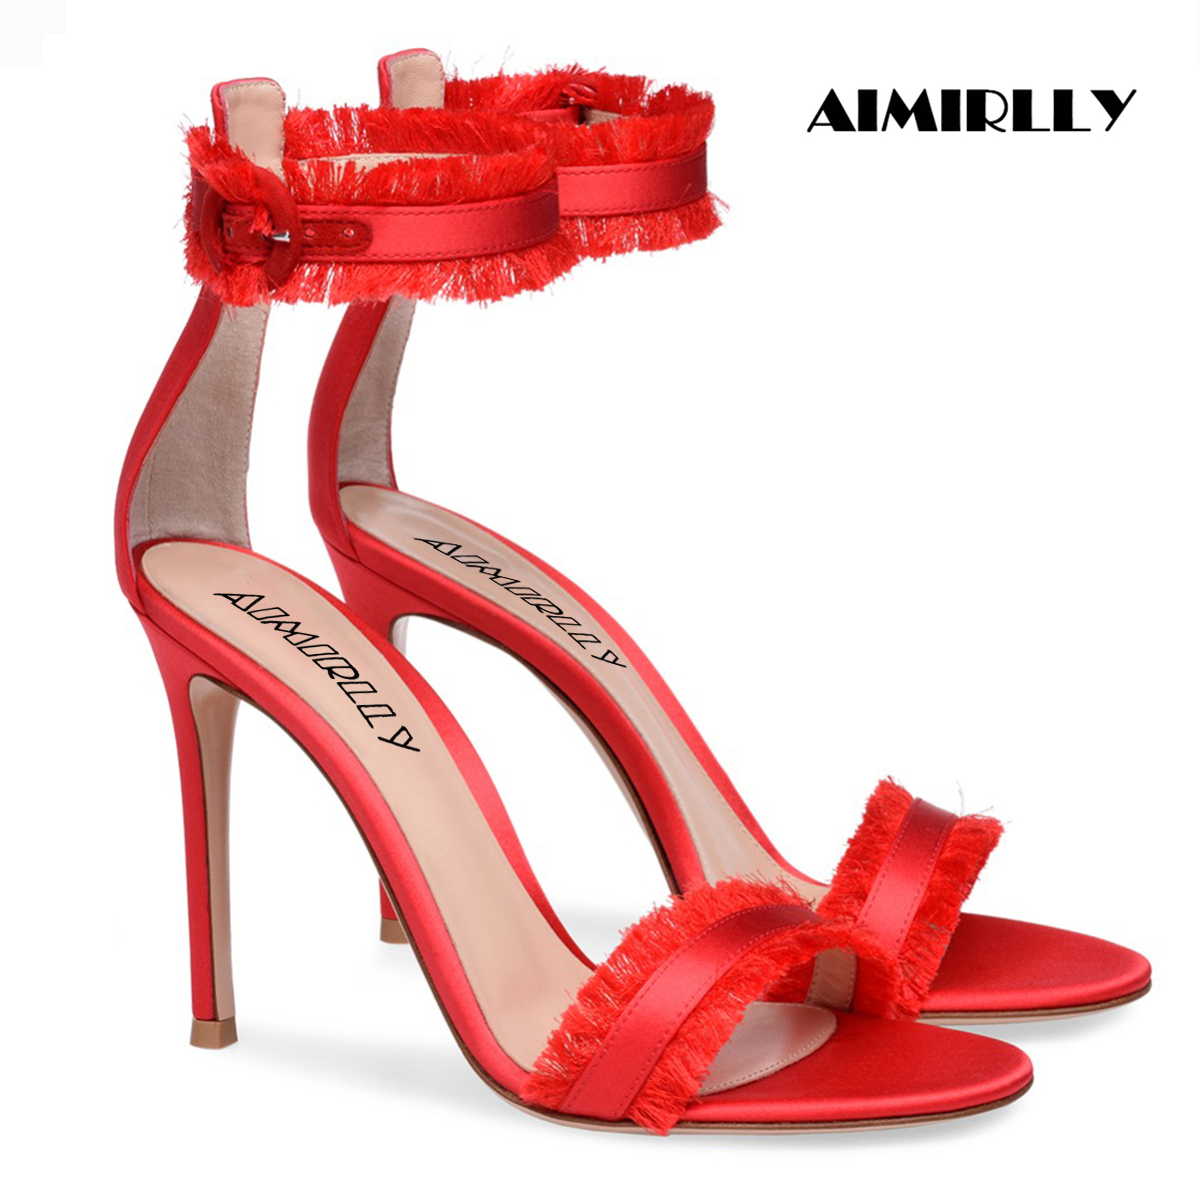 Womens Sandals Open Toe High Heels Shoes Red Satin Fringe Strap Ladies Party Wedding Dress Stilettos Ankle Buckle Aimirlly